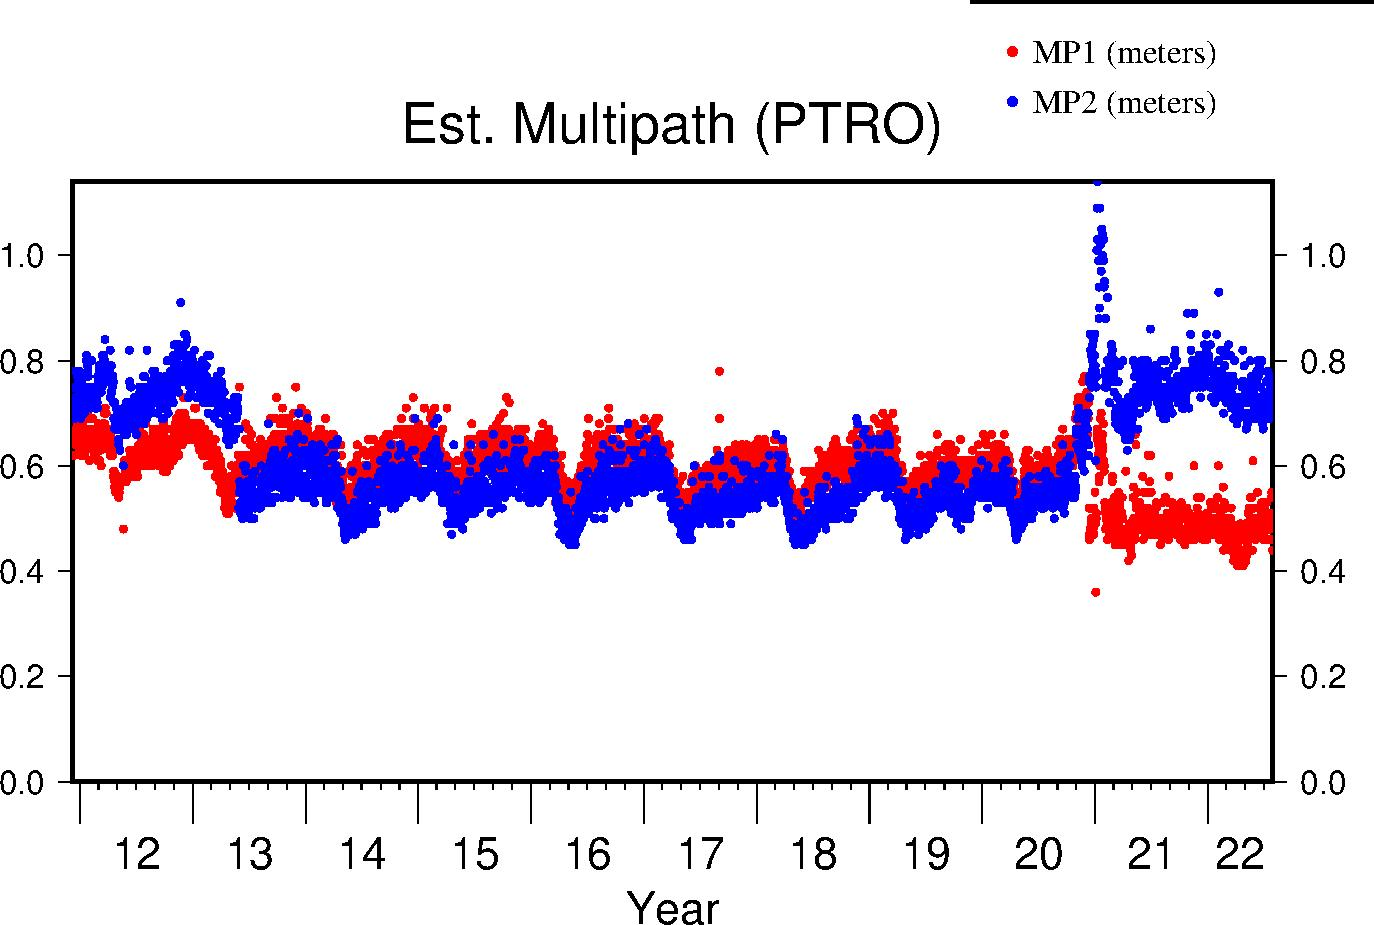 PTRO multipath lifetime